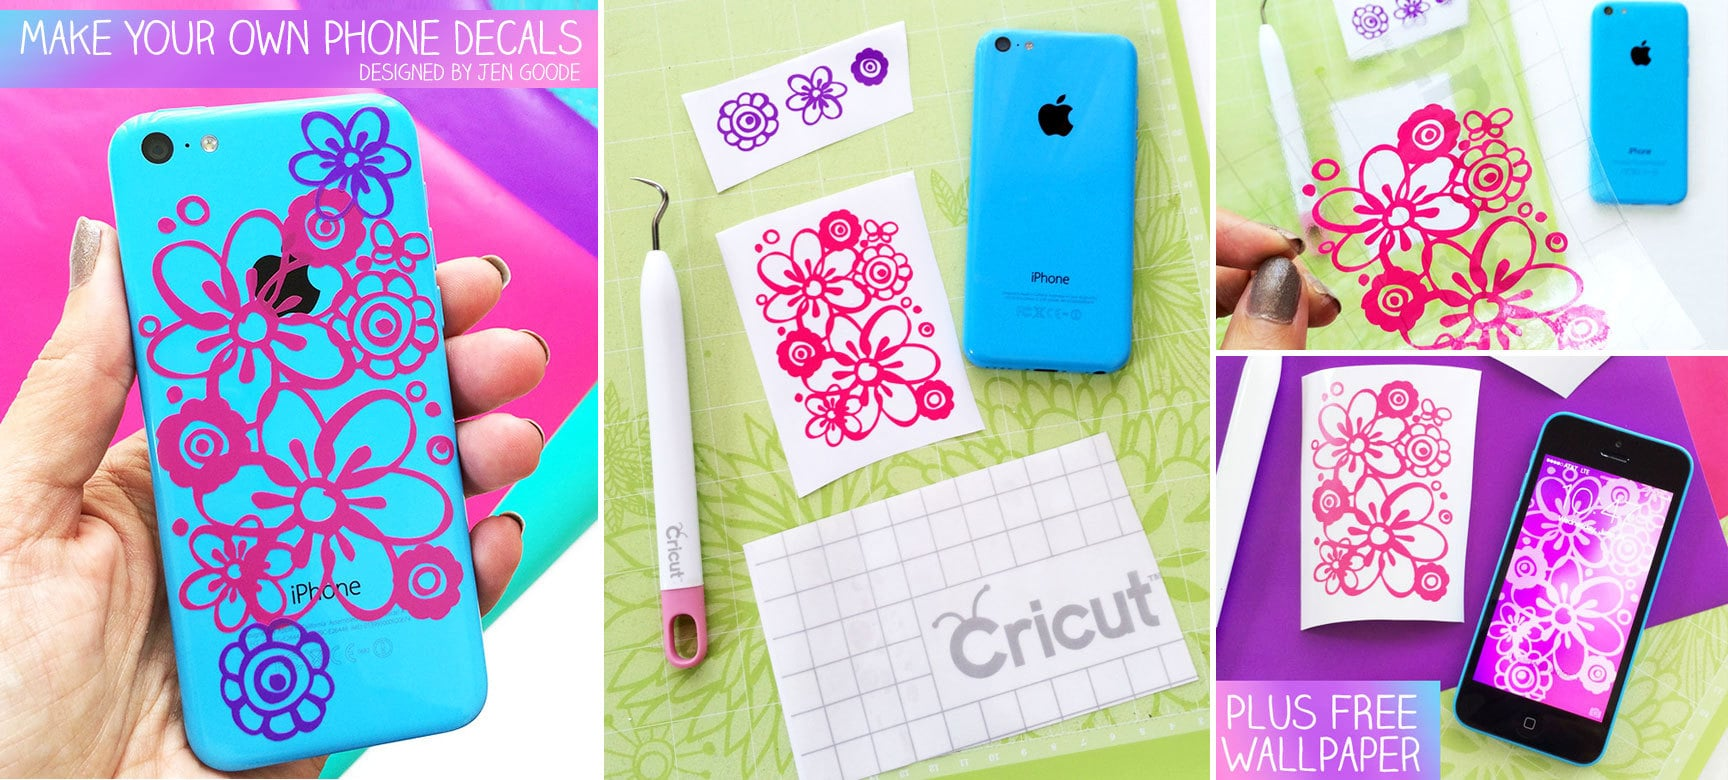 Make Iphone Decals With Cricut Plus Free Floral Iphone